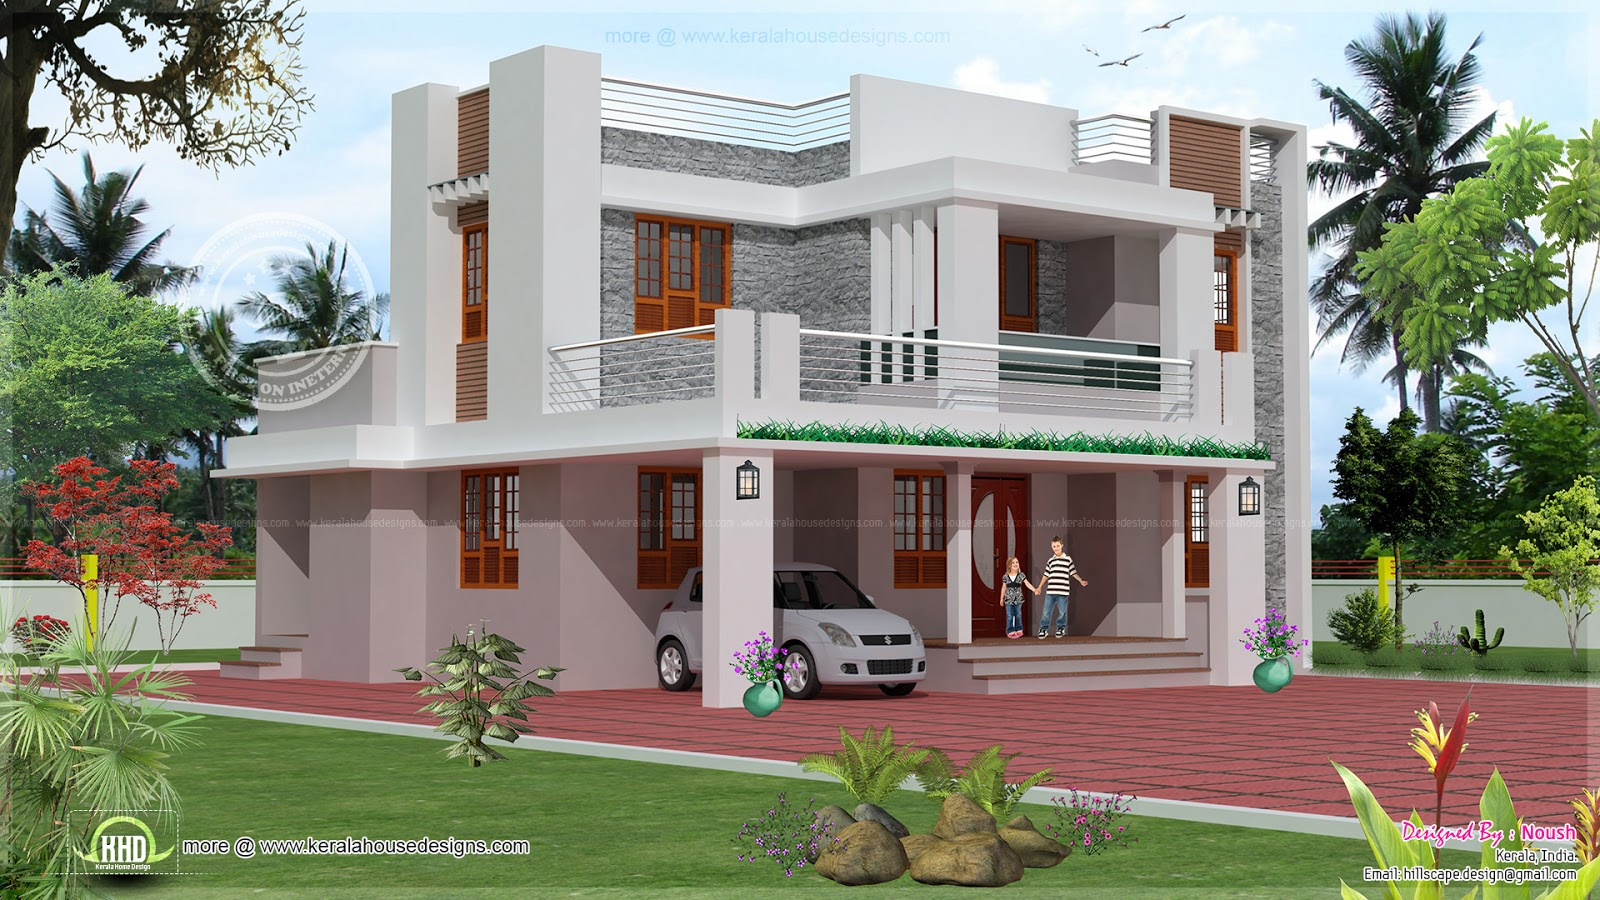 February 2014 house design plans Two story house designs